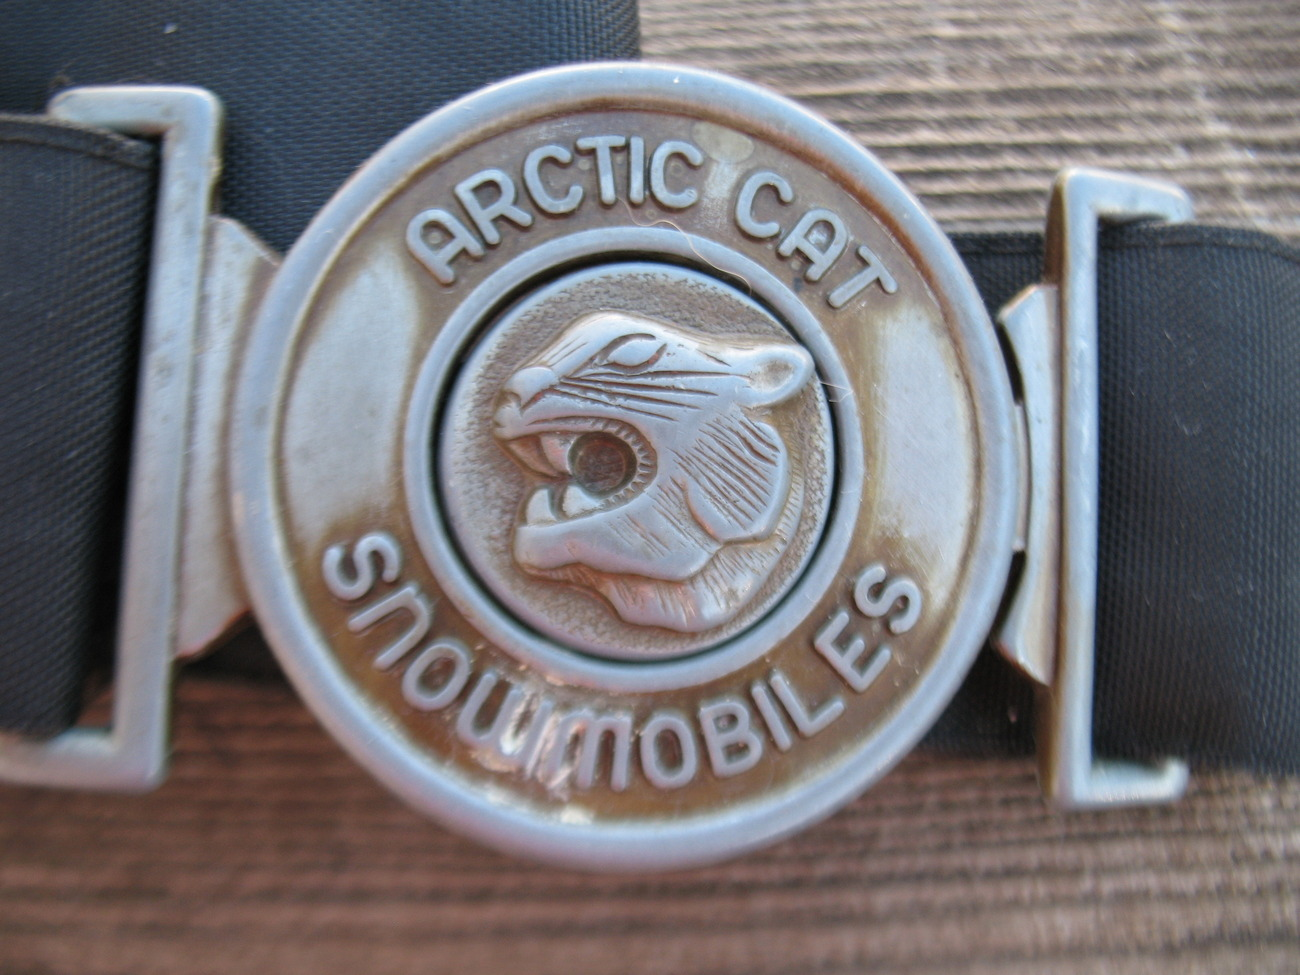 Vintage Arctic Cat snowmobile belt buckle lost replacement for suit Adult Black